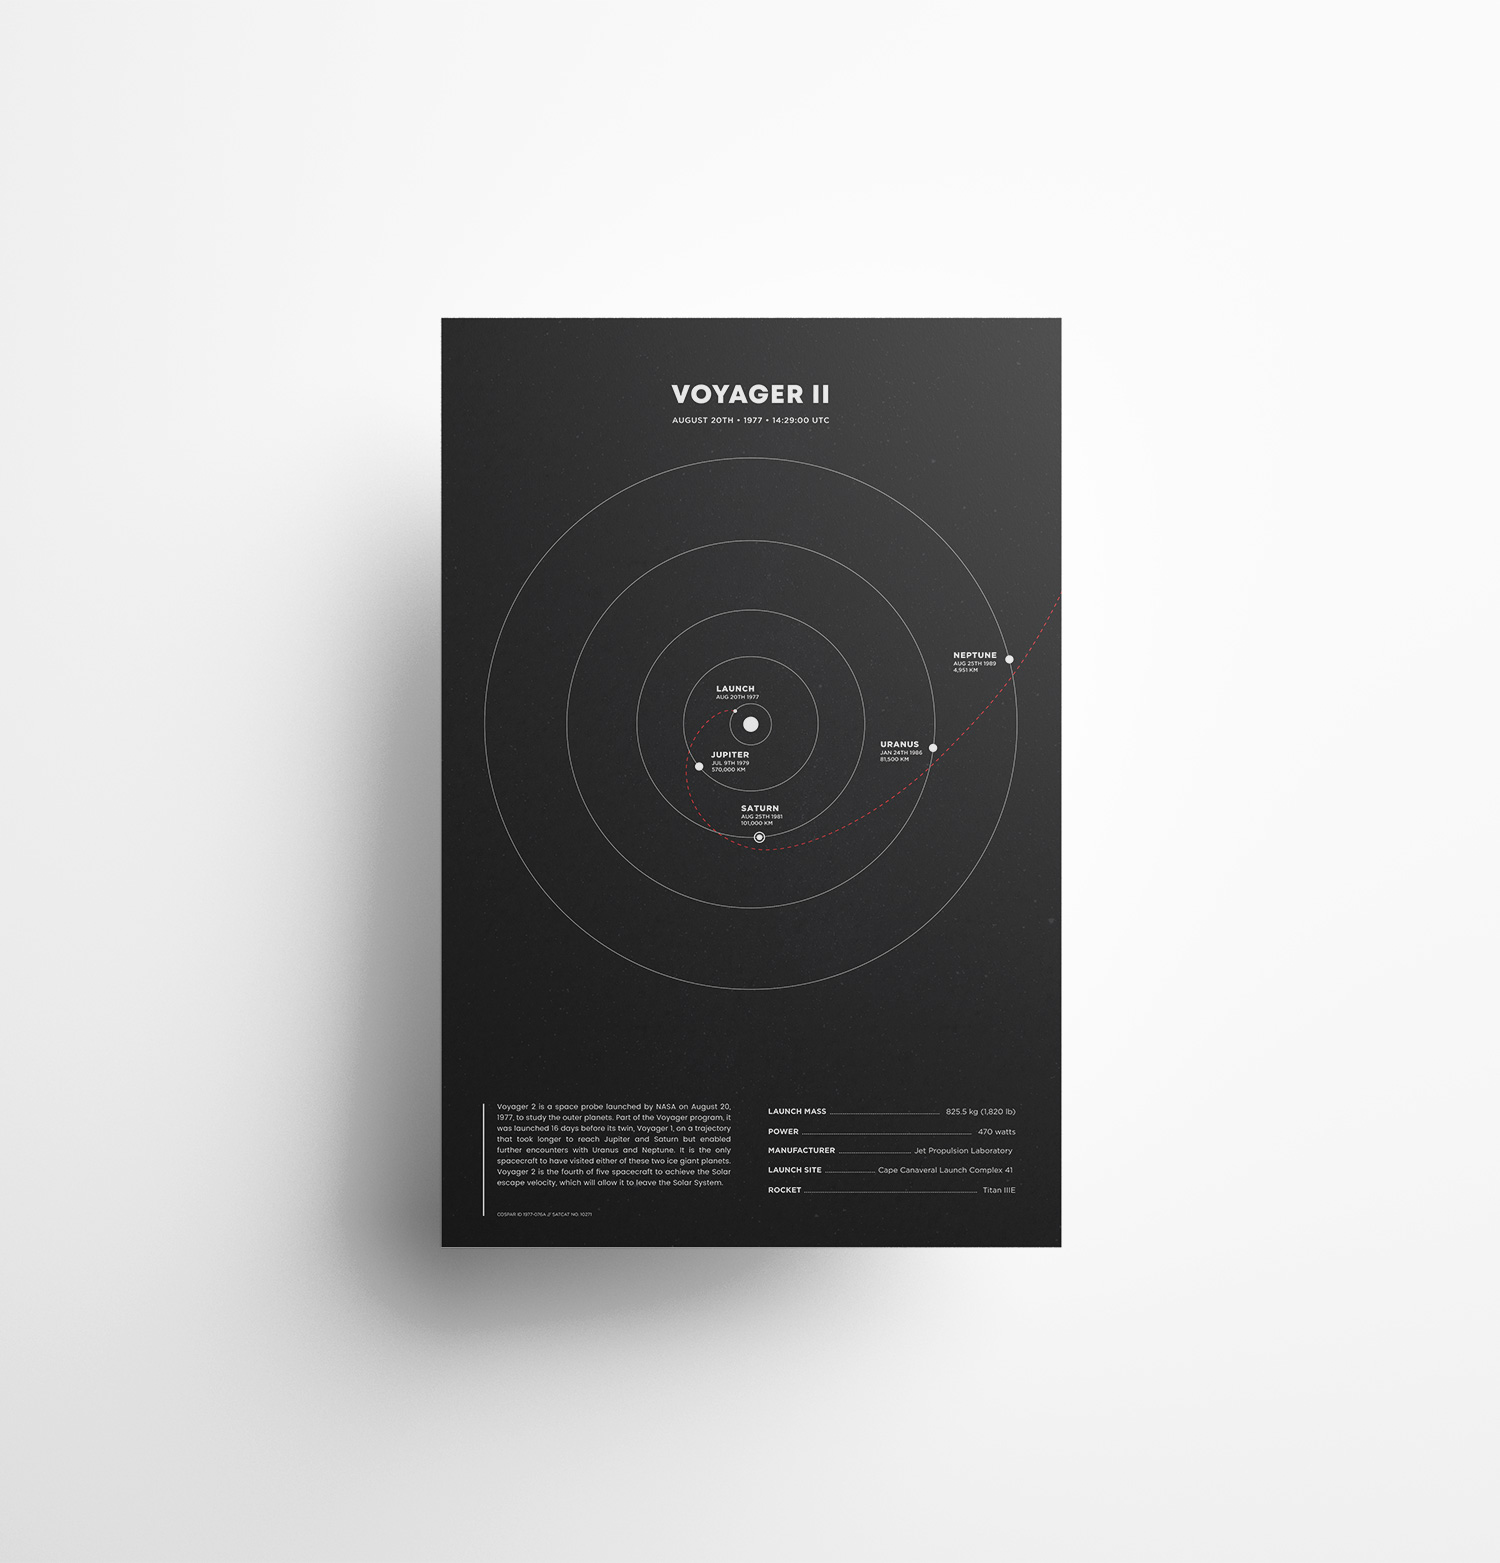 Voyager 2 Minimalist Space Poster